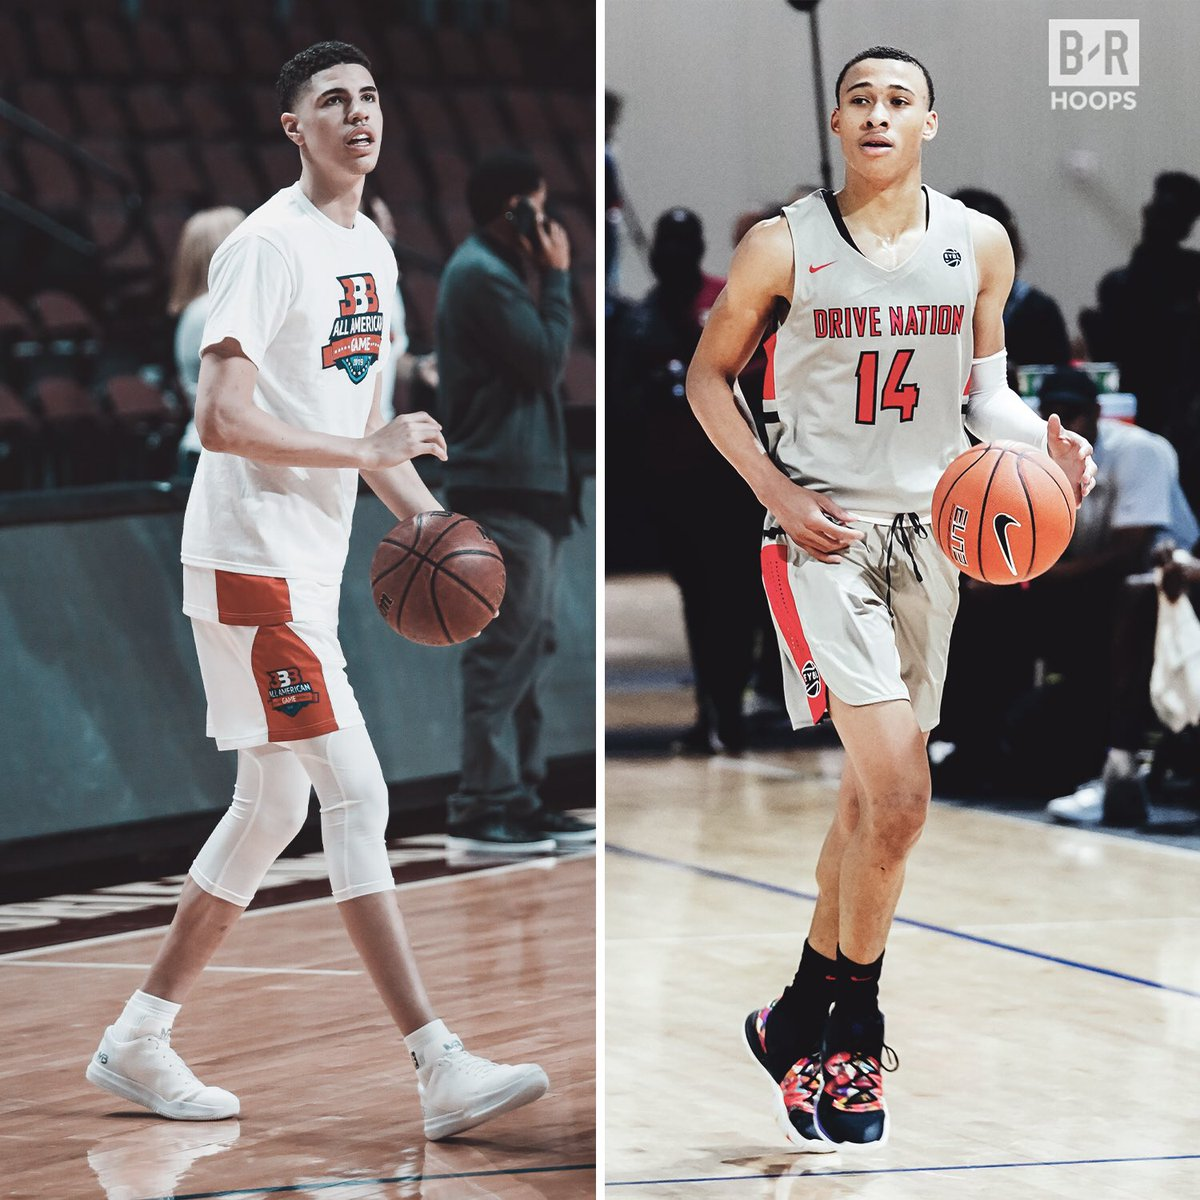 Melo and RJ Hampton will both be playing in the NBL next season 🔥🔥🔥